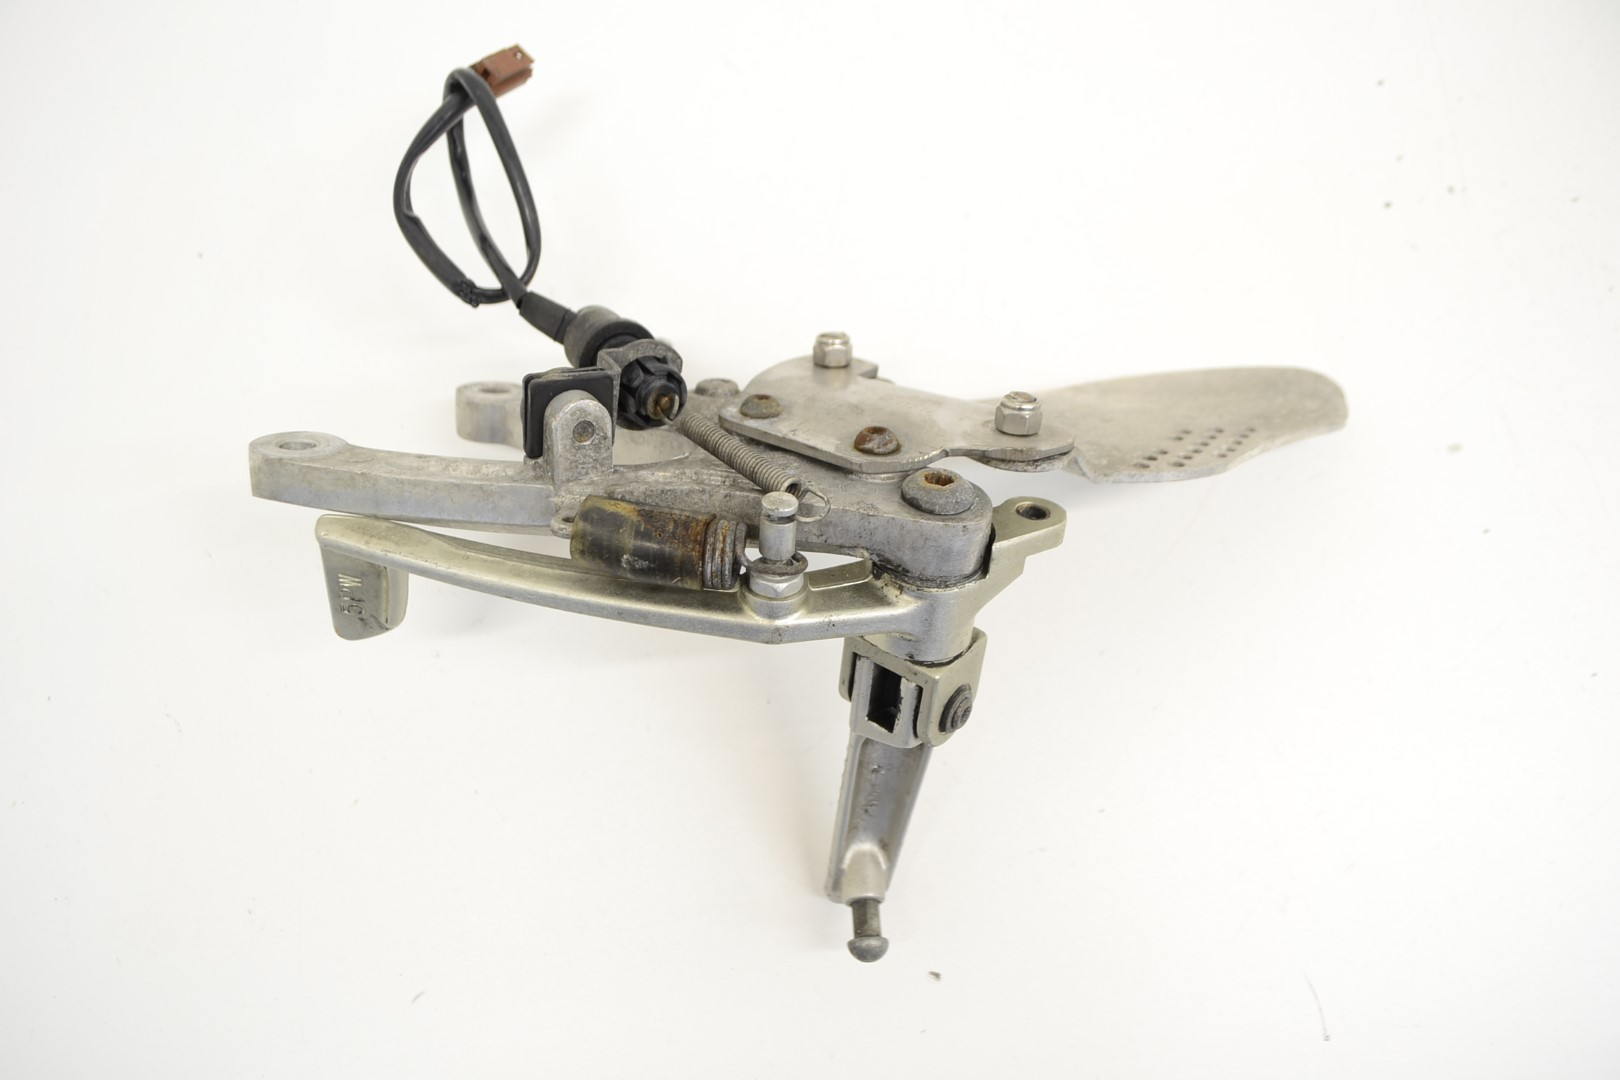 2003-YAMAHA-YZF-R1-FRONT-RIGHT-SIDE-FOOTREST-PEG-HANGER-ASSEMBLY thumbnail 6